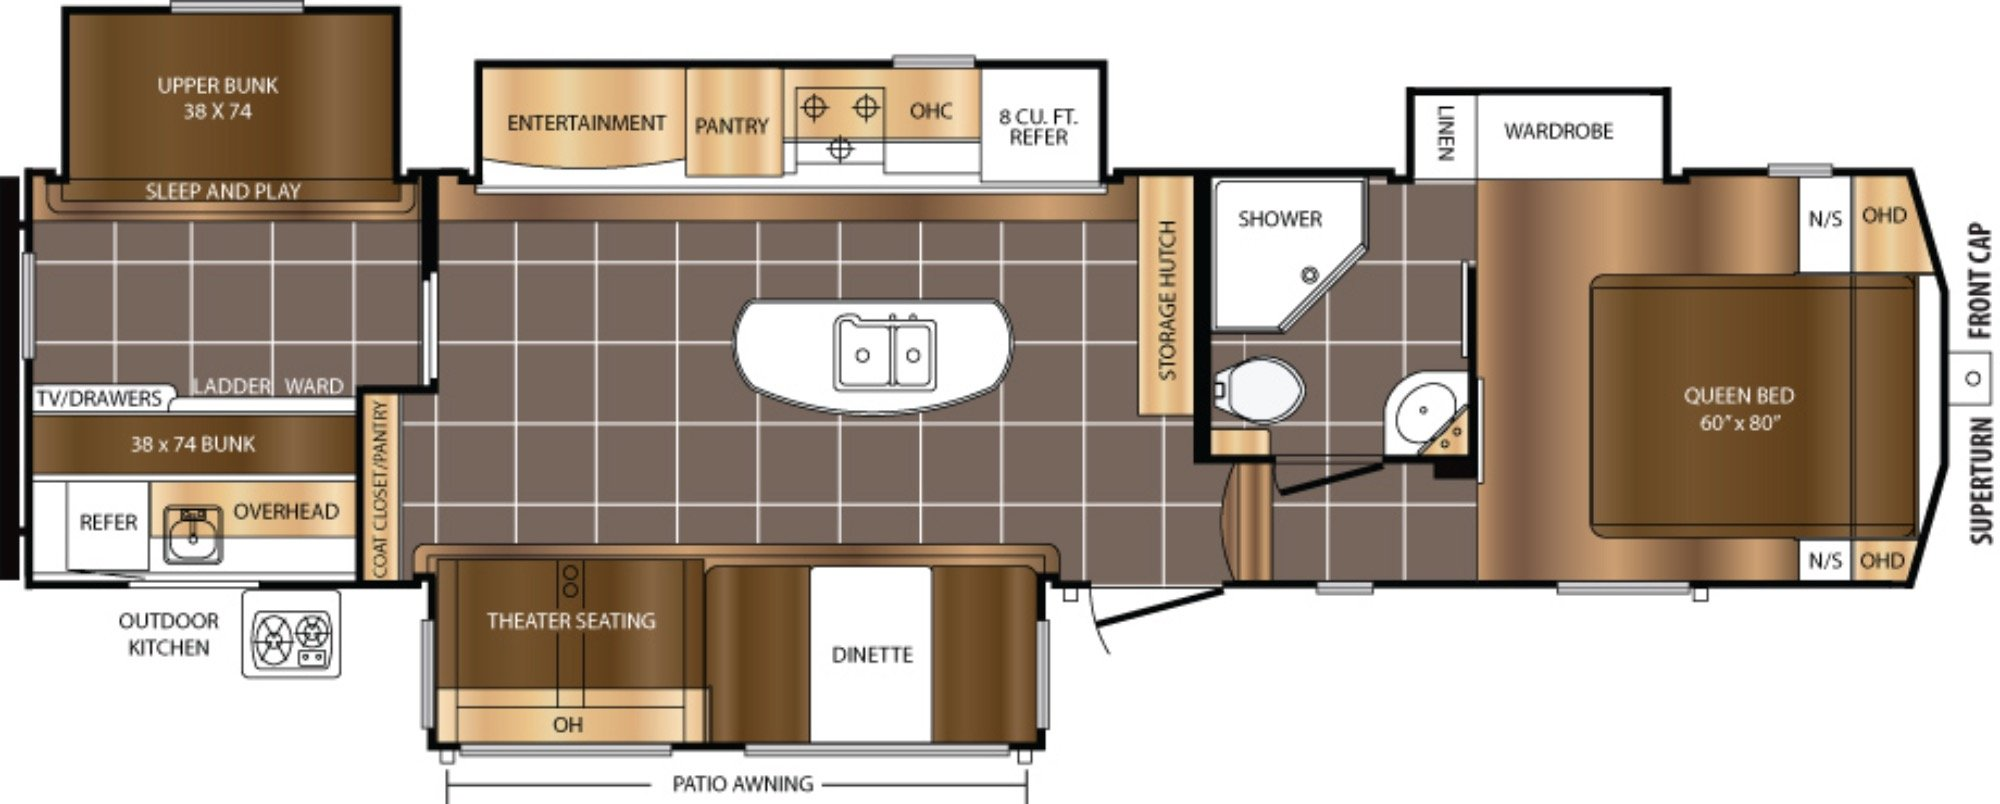 View Floor Plan for 2018 PRIME TIME CRUSADER 337QBH